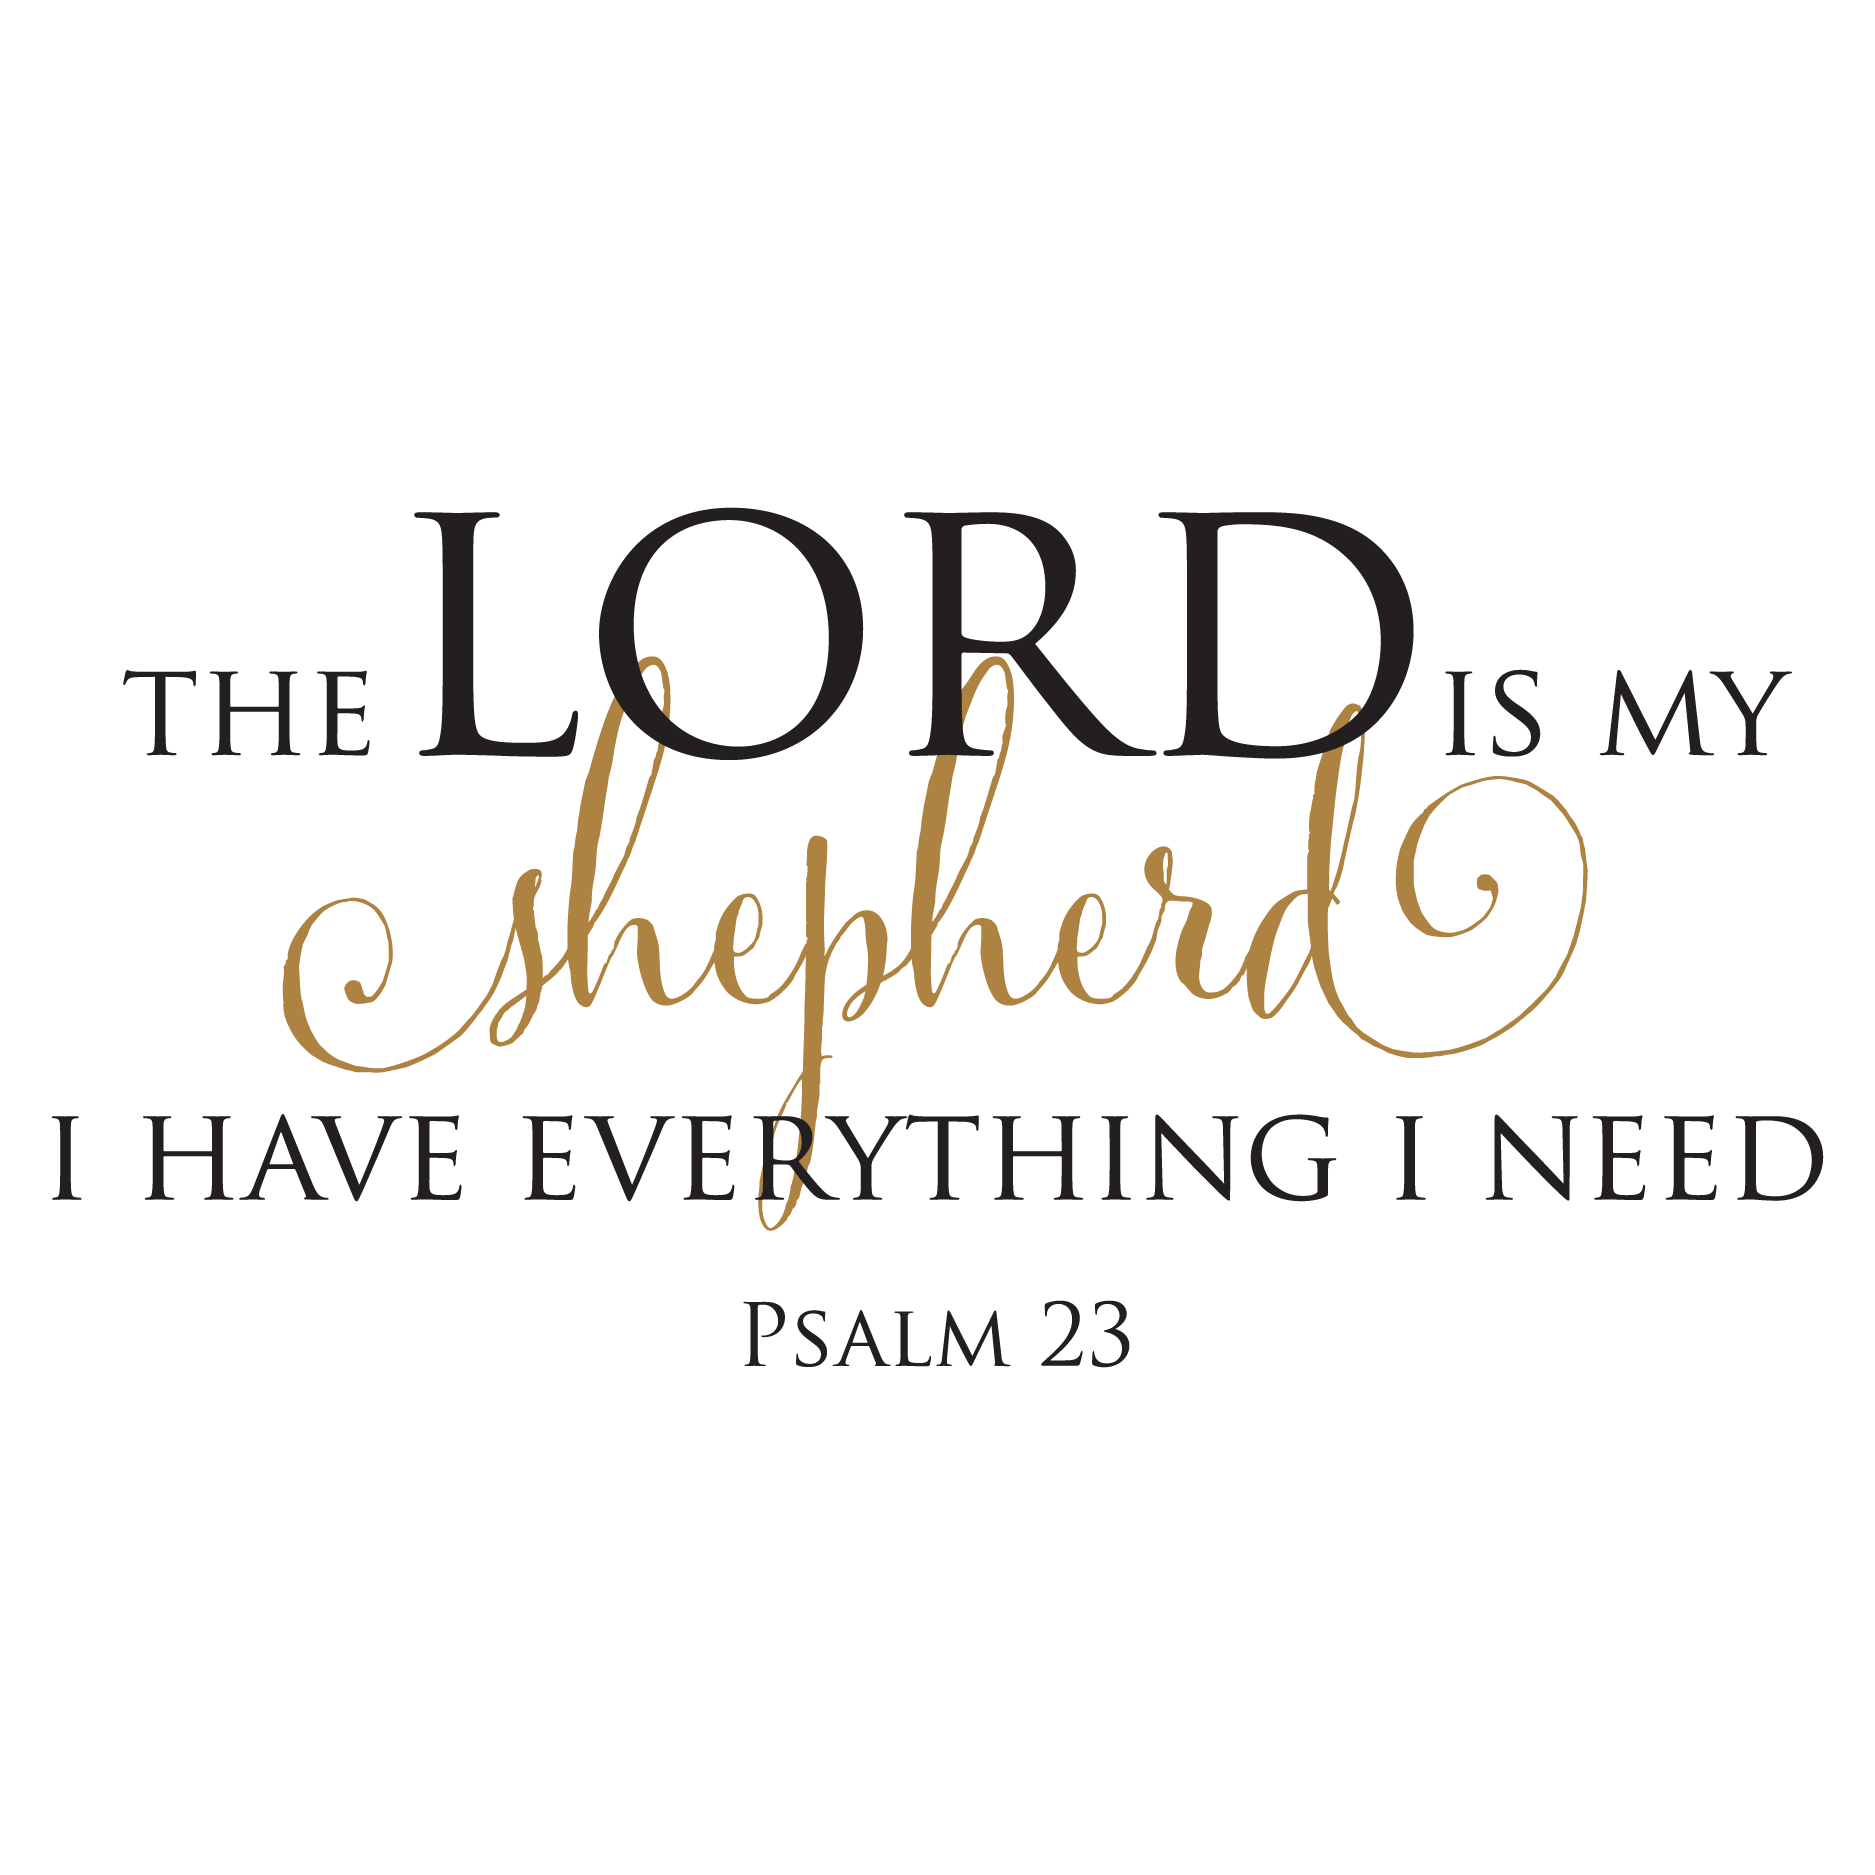 The Lord Is My Shepherd Wall Quotes Decal Wallquotes Com